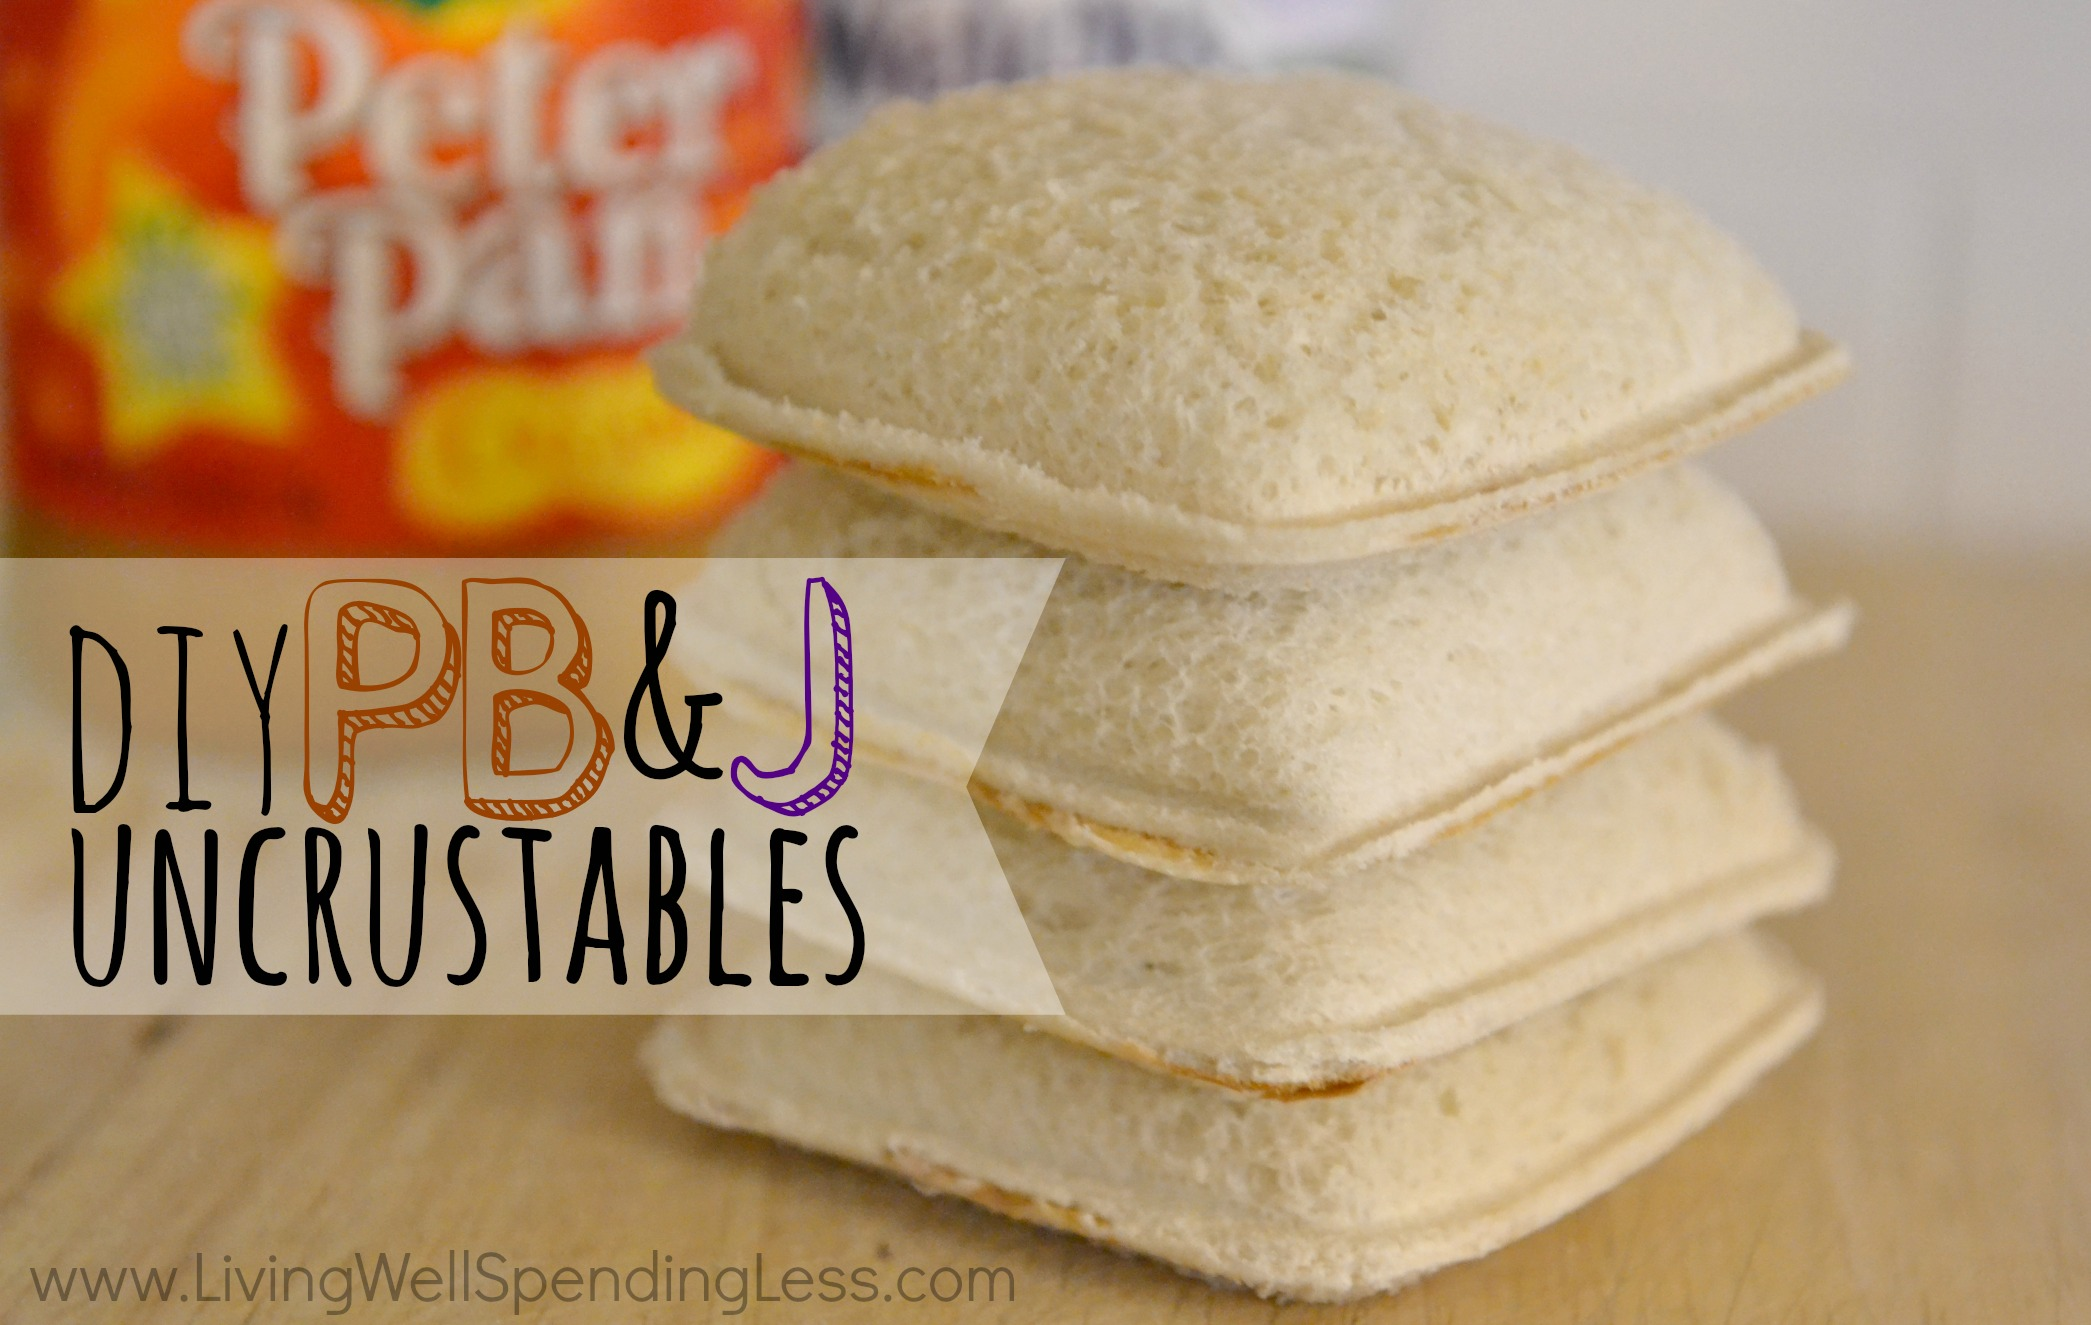 These DIY PB&J uncrustables are easy to make and freezer friendly.